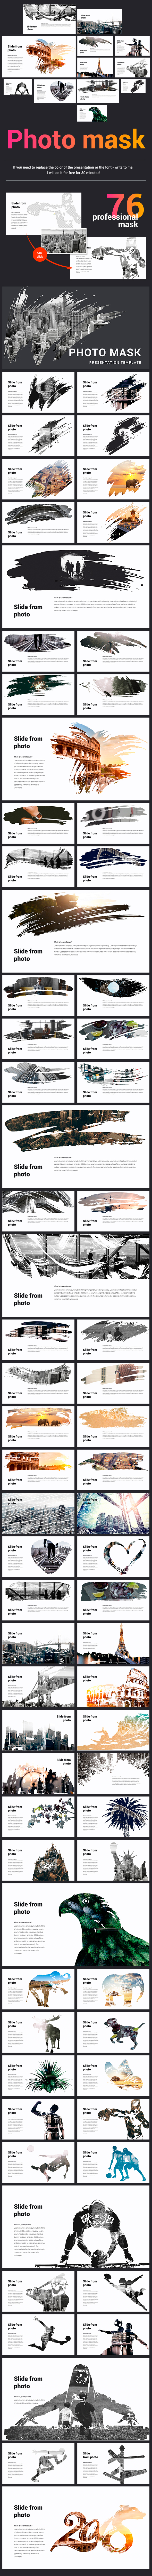 Photo Mask Powerpoint Template - Creative PowerPoint Templates